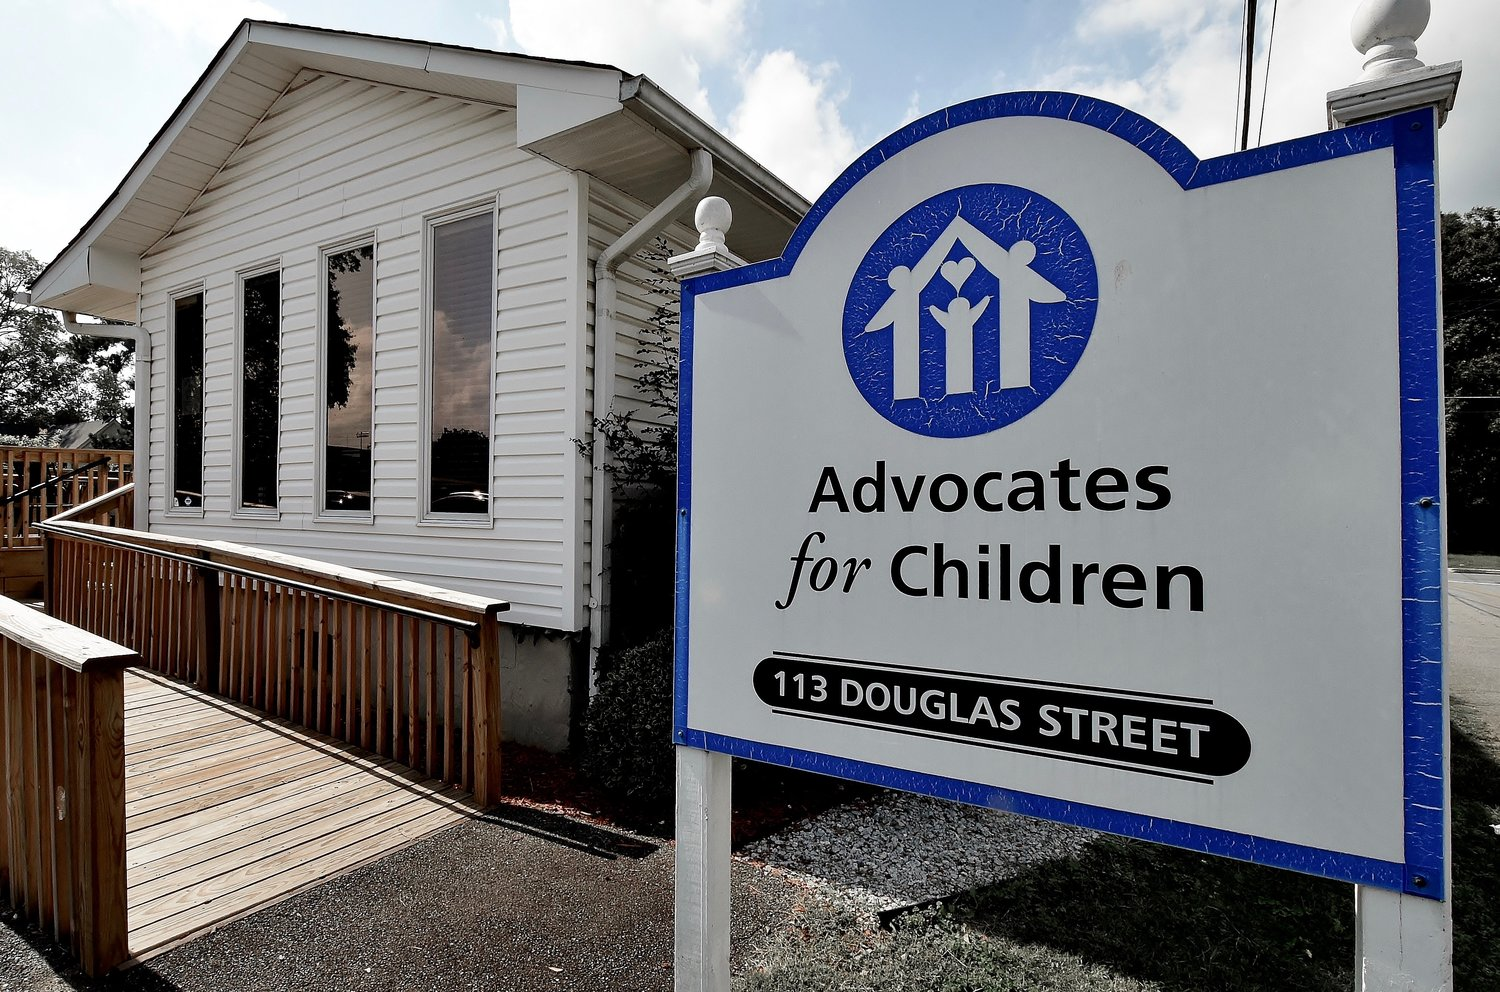 The Advocates for Children Children's Advocacy Center is located on Douglas Street in Cartersville.